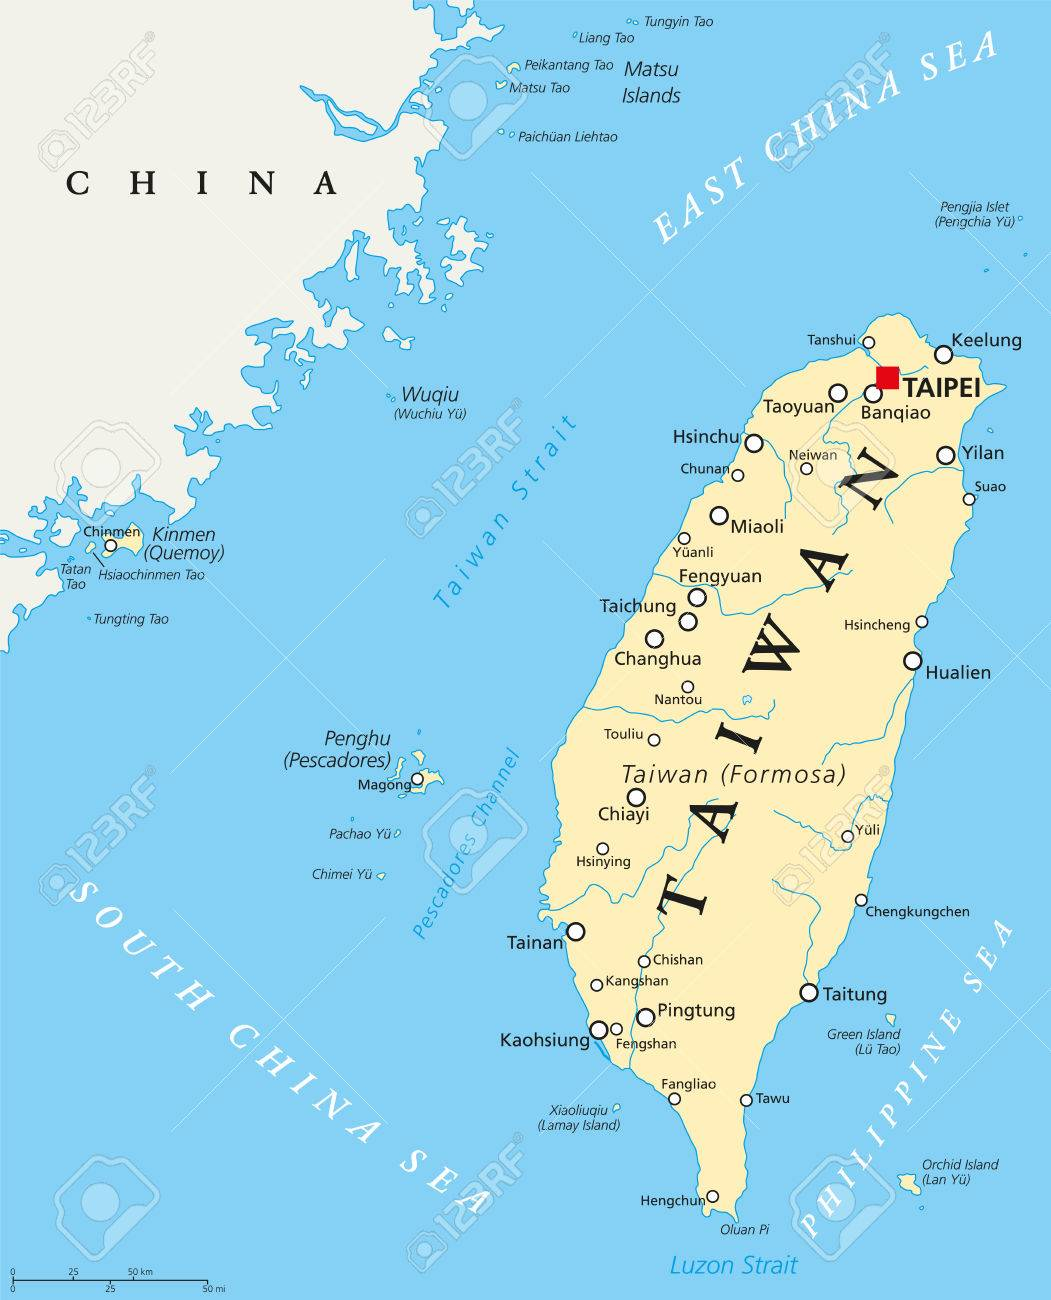 Taiwan Republic Of China Political Map With Capital Taipei - China political map in english